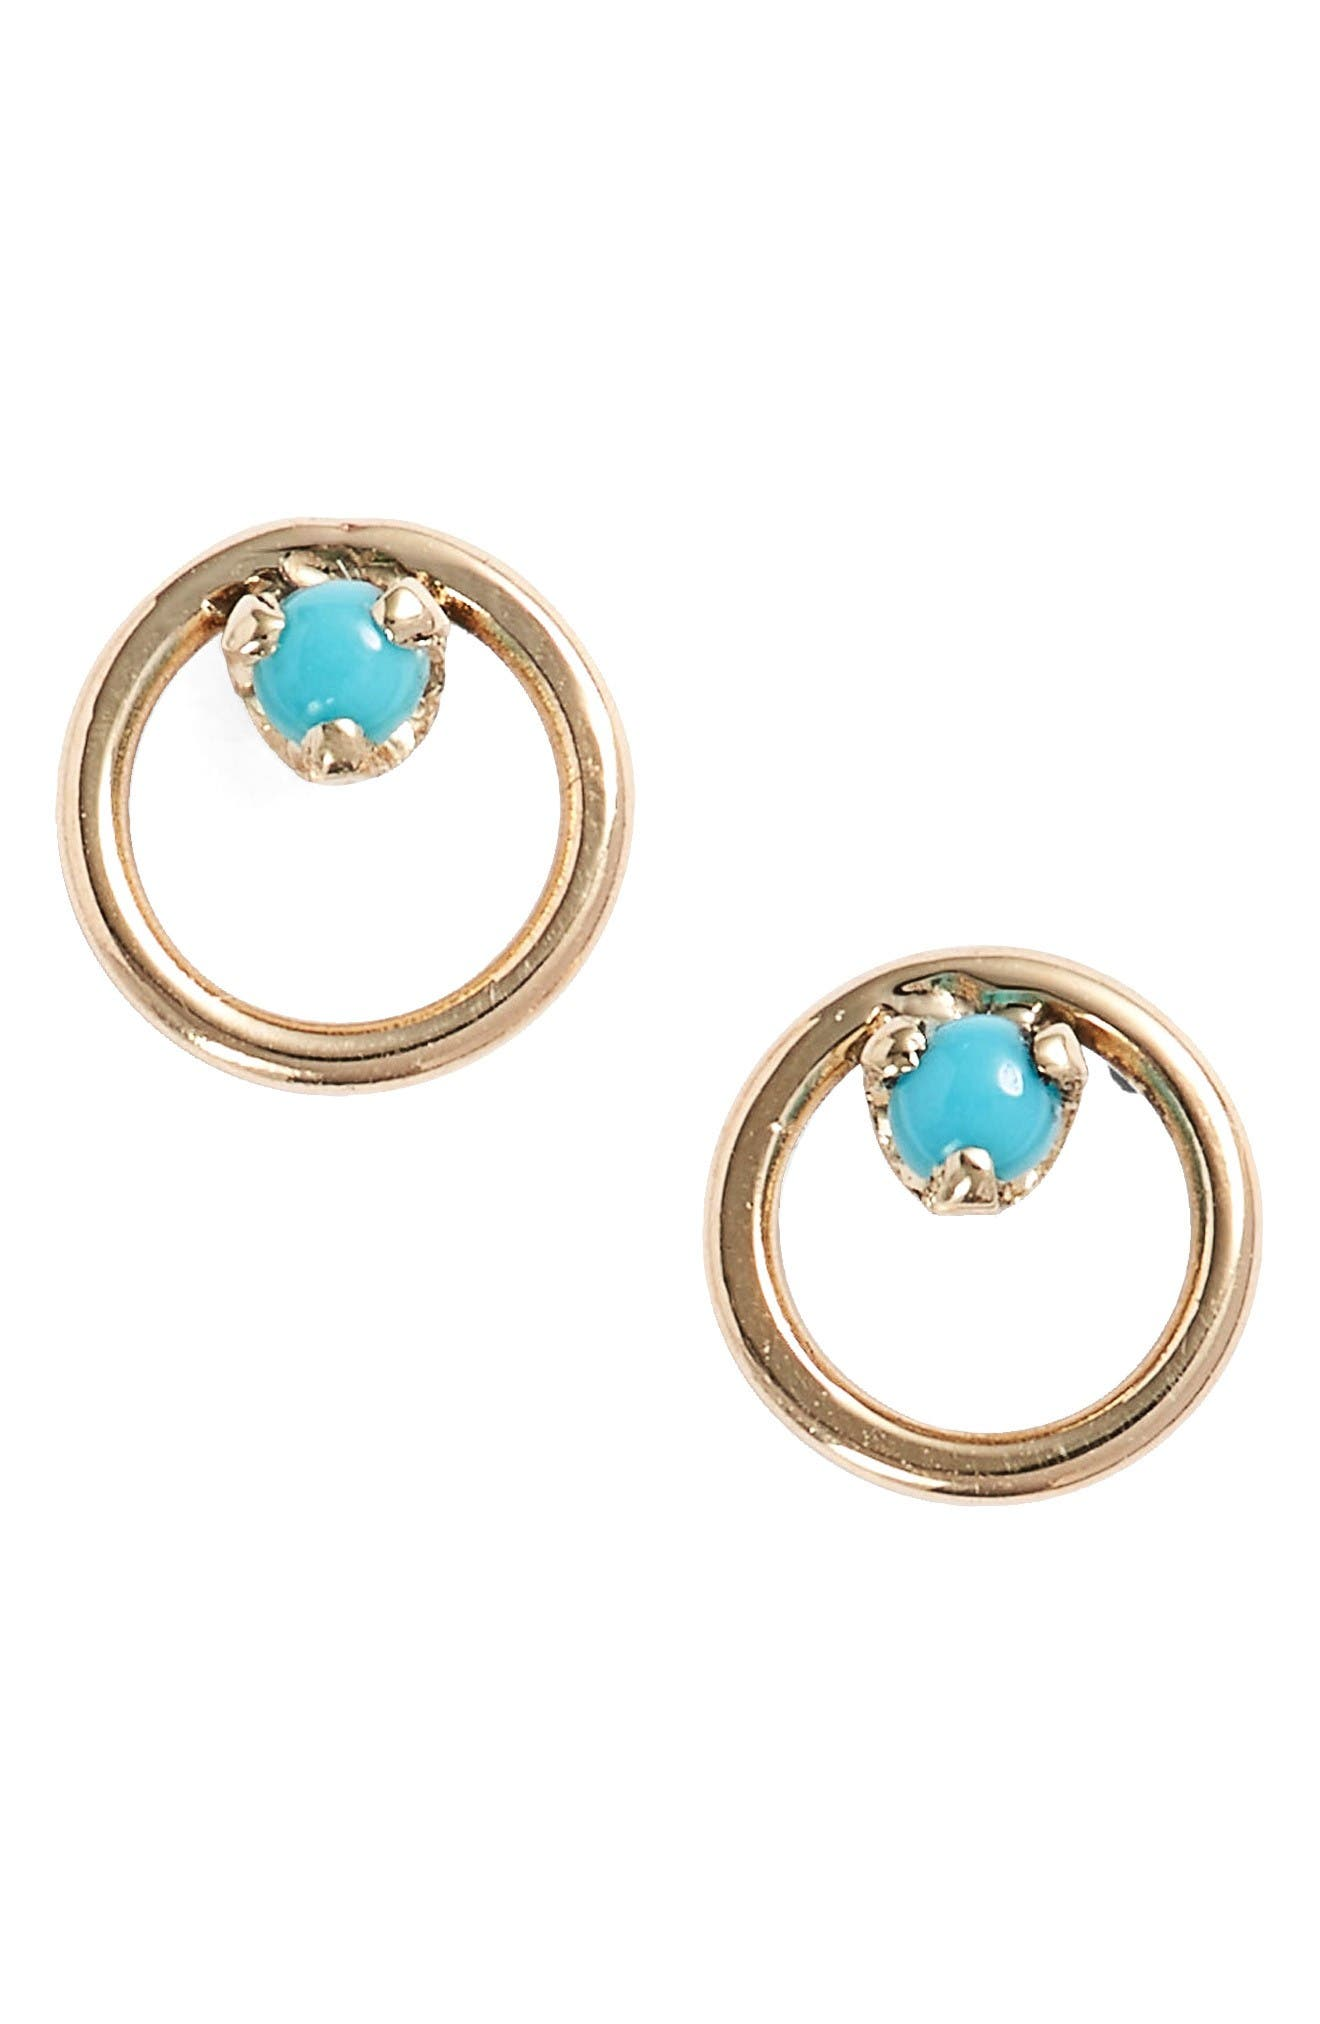 Turquoise Circle Stud Earrings,                             Main thumbnail 1, color,                             Yellow Gold/ Turquoise